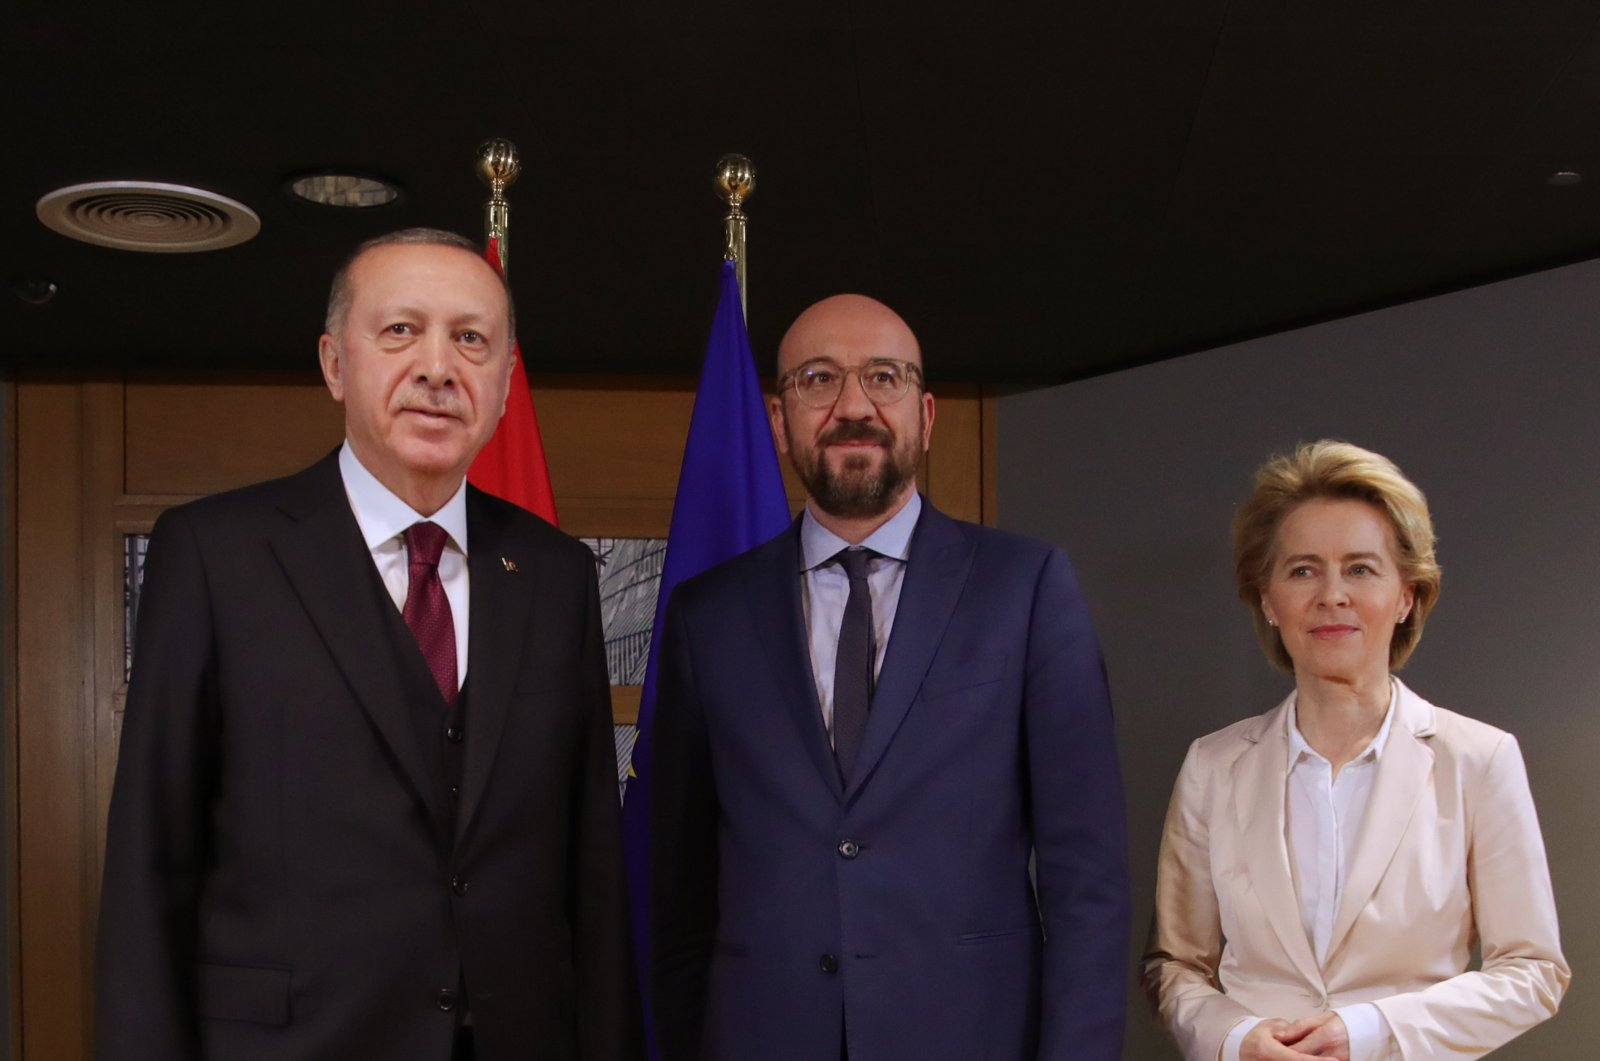 President Recep Tayyip Erdoğan (L), Charles Michel (C), president of the European Council, and Ursula von der Leyen (R), the president of the European Commission, during a meeting in Brussels, March 10, 2020. (AA Photo)